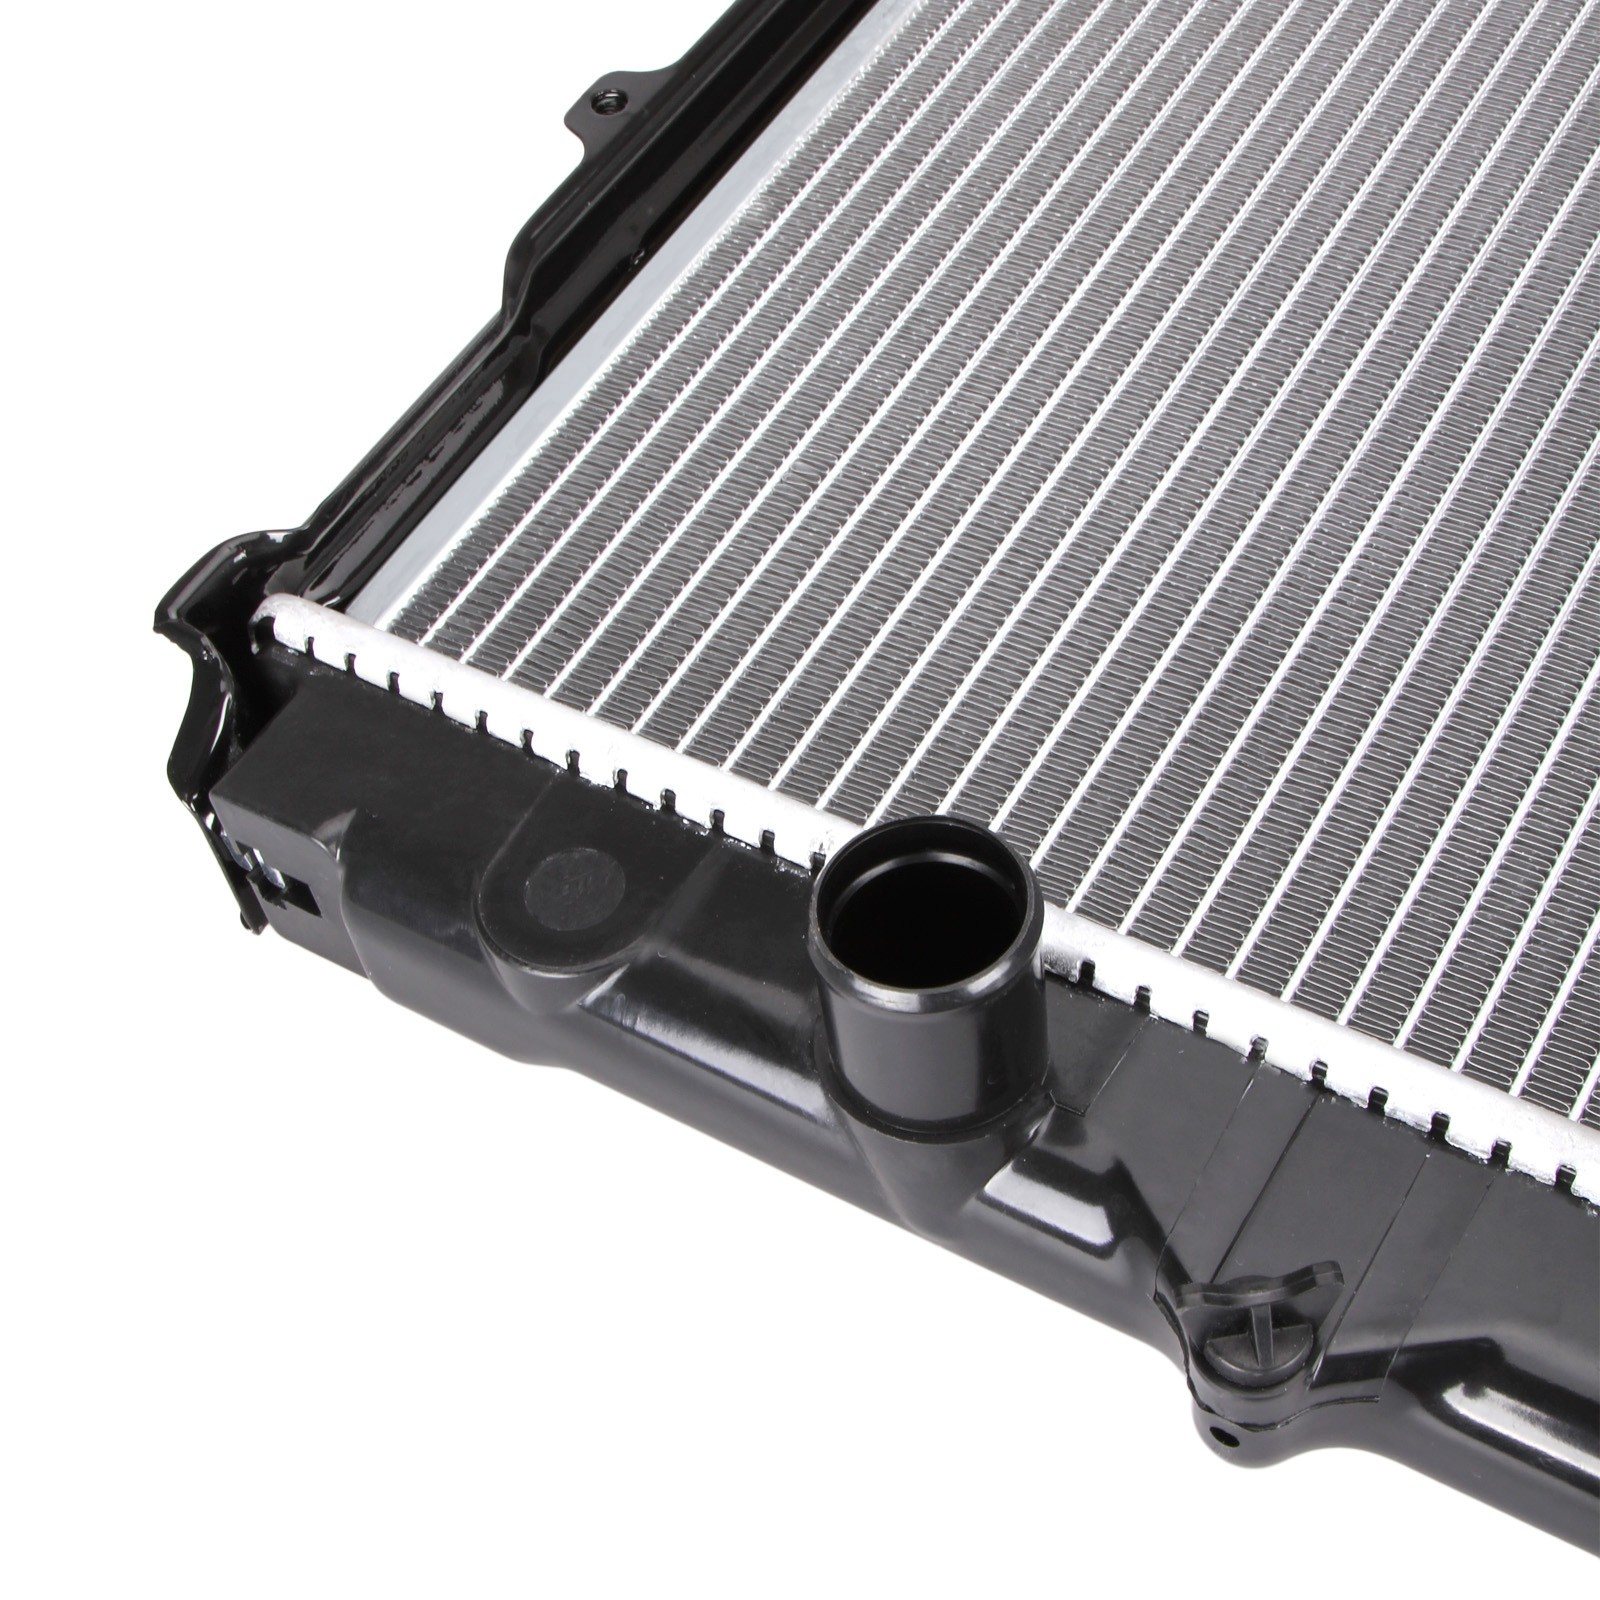 Dromedary-Find Toyota Radiator Toyota Yaris Radiator From Hongdao Car Radiator-2